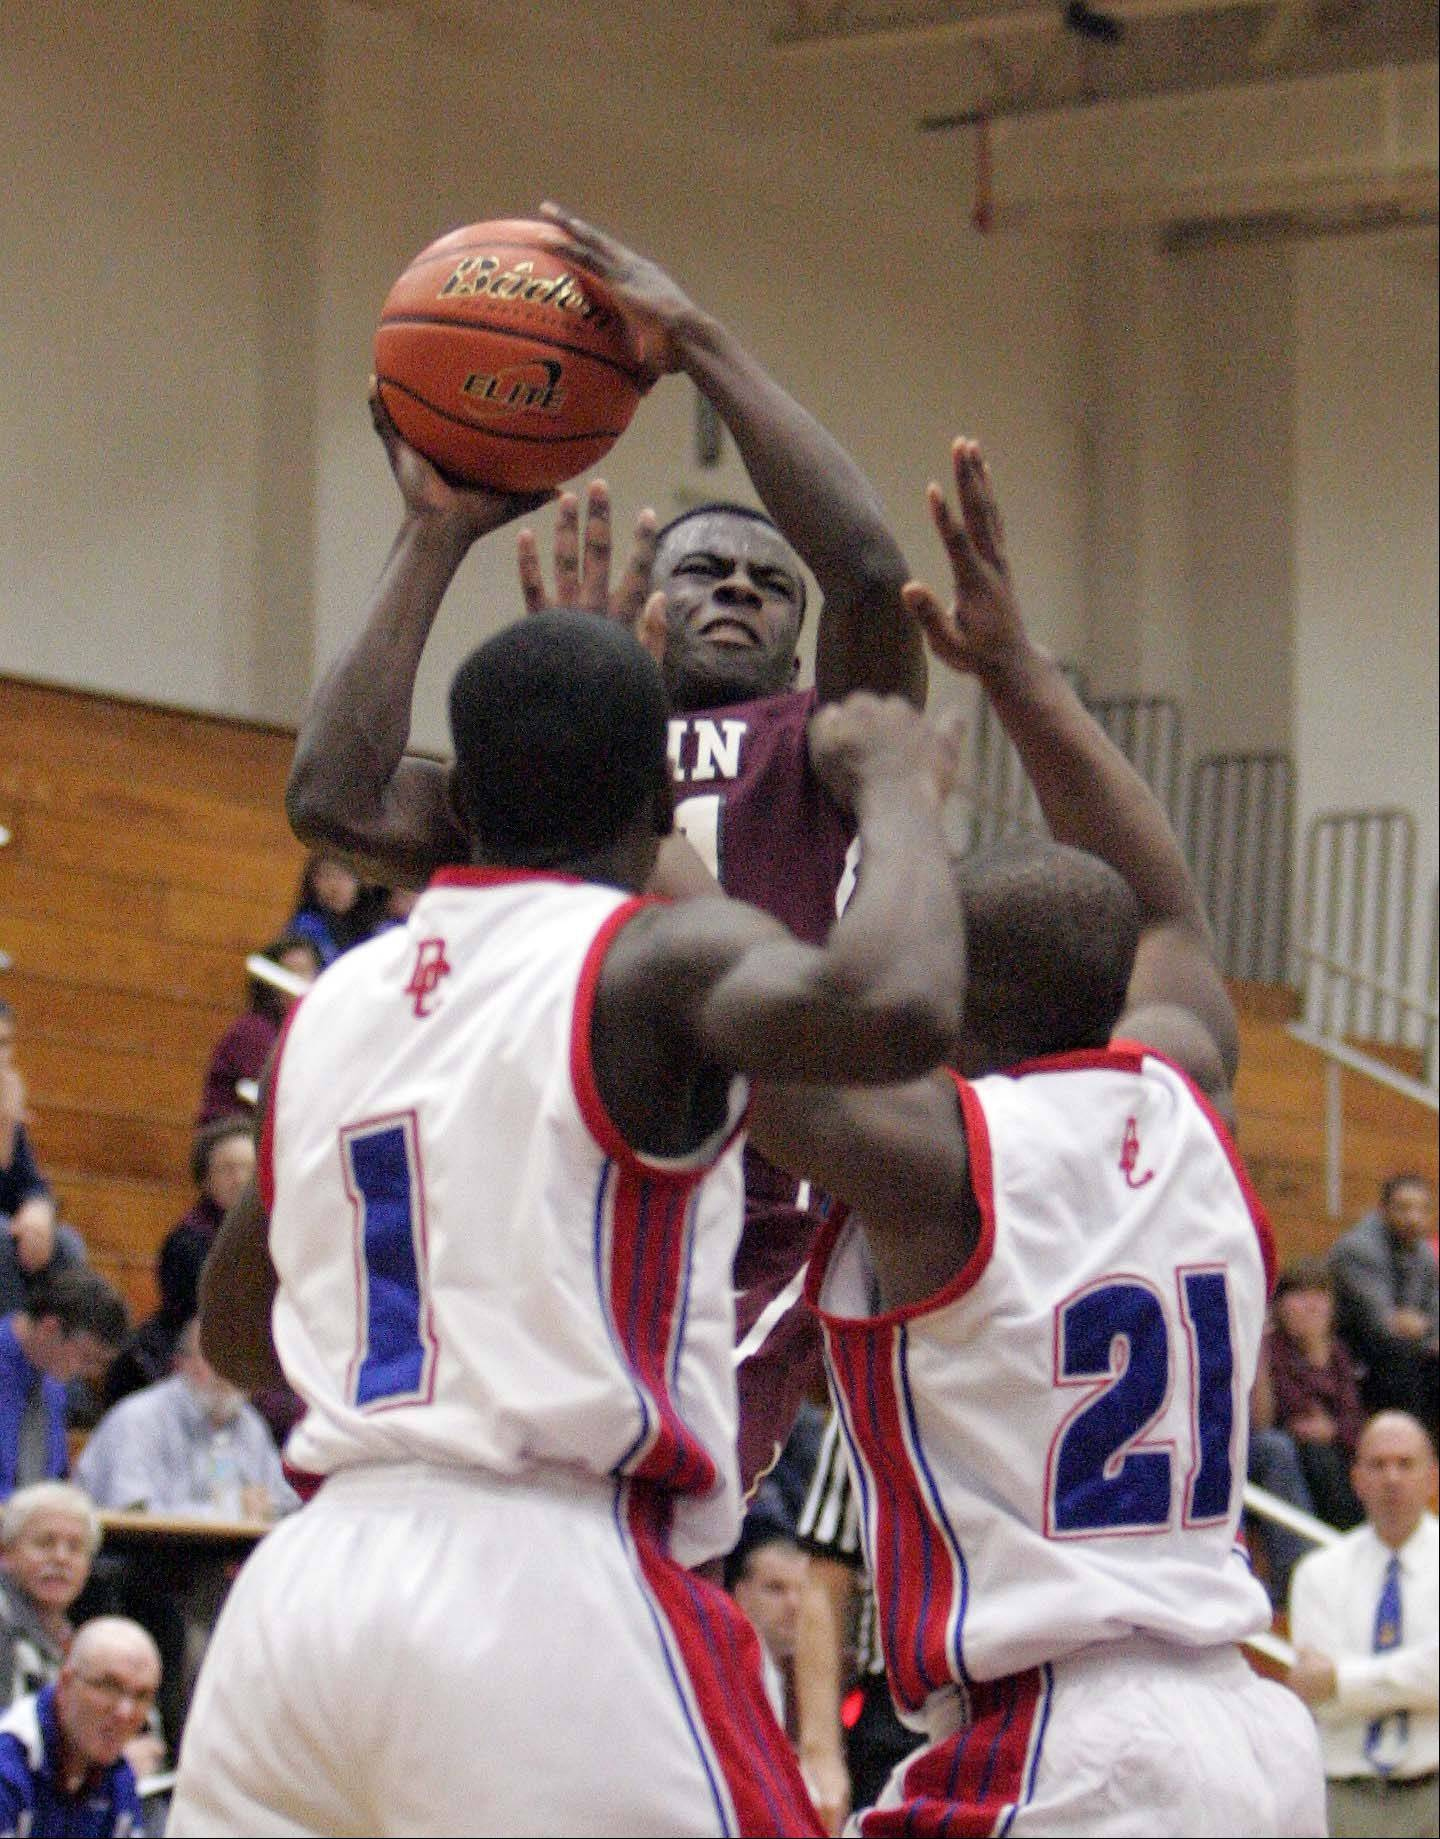 Images from Elgin vs Dundee-Crown at the 38th Annual Elgin Boys Holiday Basketball Tournament Thursday December 27, 2012.